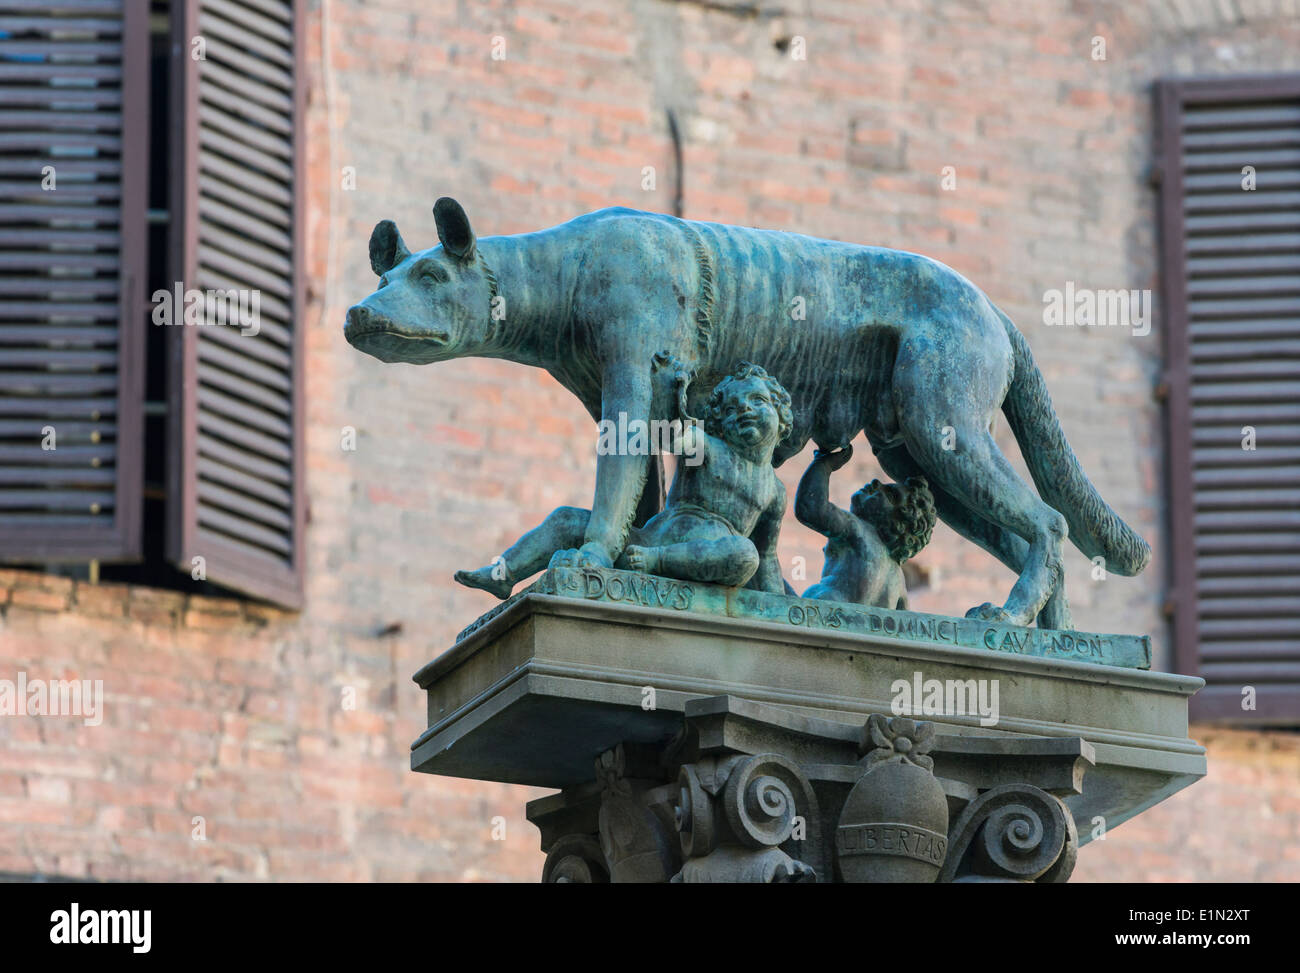 Siena, Siena Province, Tuscany, Italy. Statue of Romulus and Remus being suckled by the she-wolf. - Stock Image